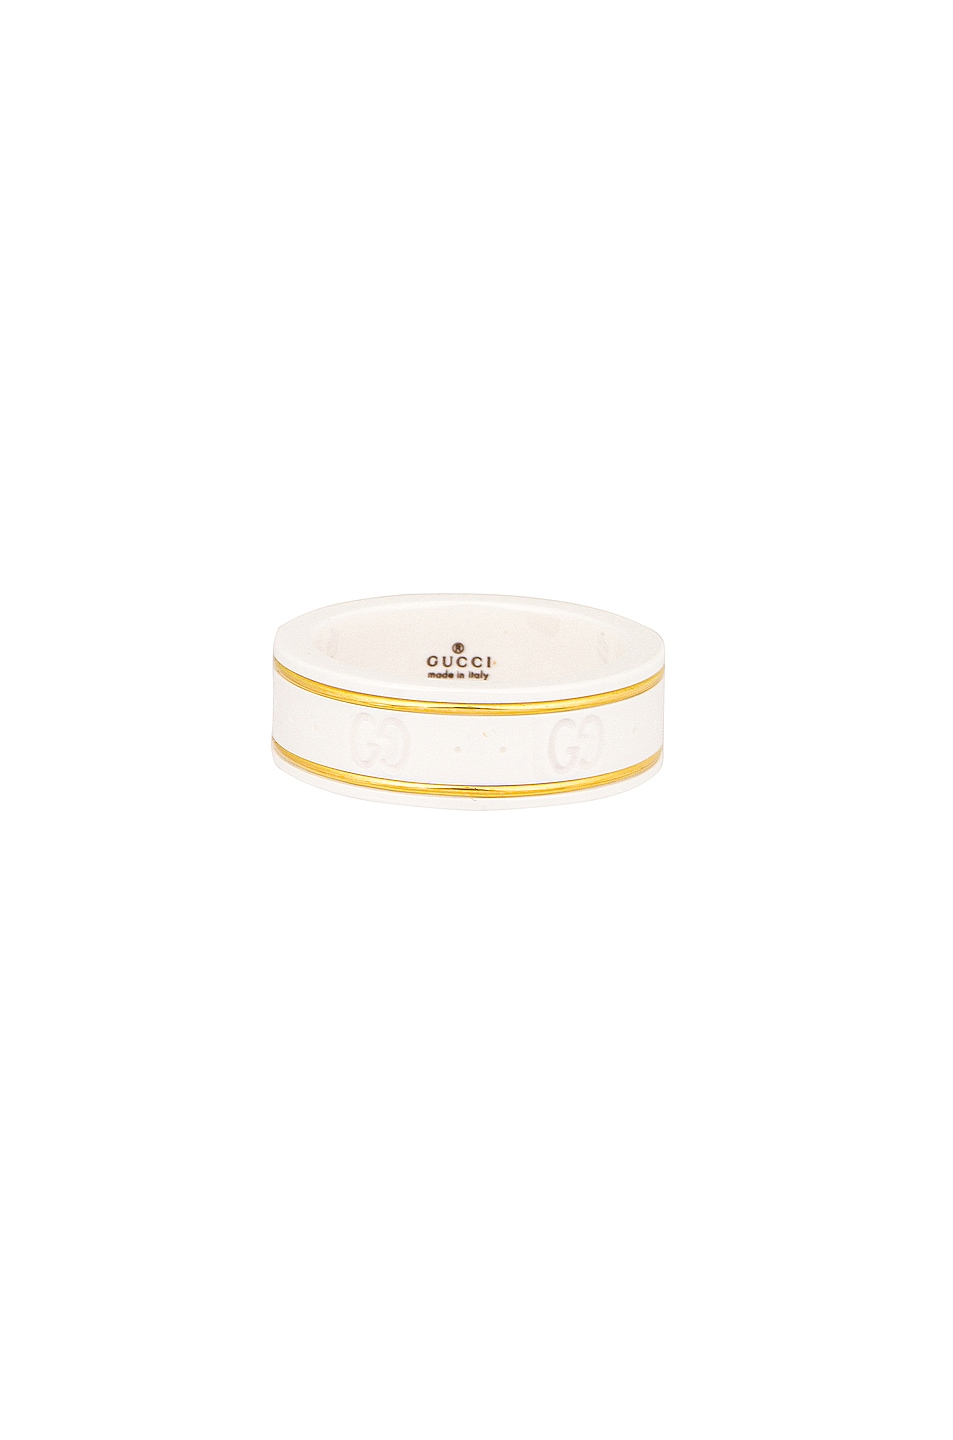 Image 1 of Gucci Icon Thin Ring in White & Yellow Gold